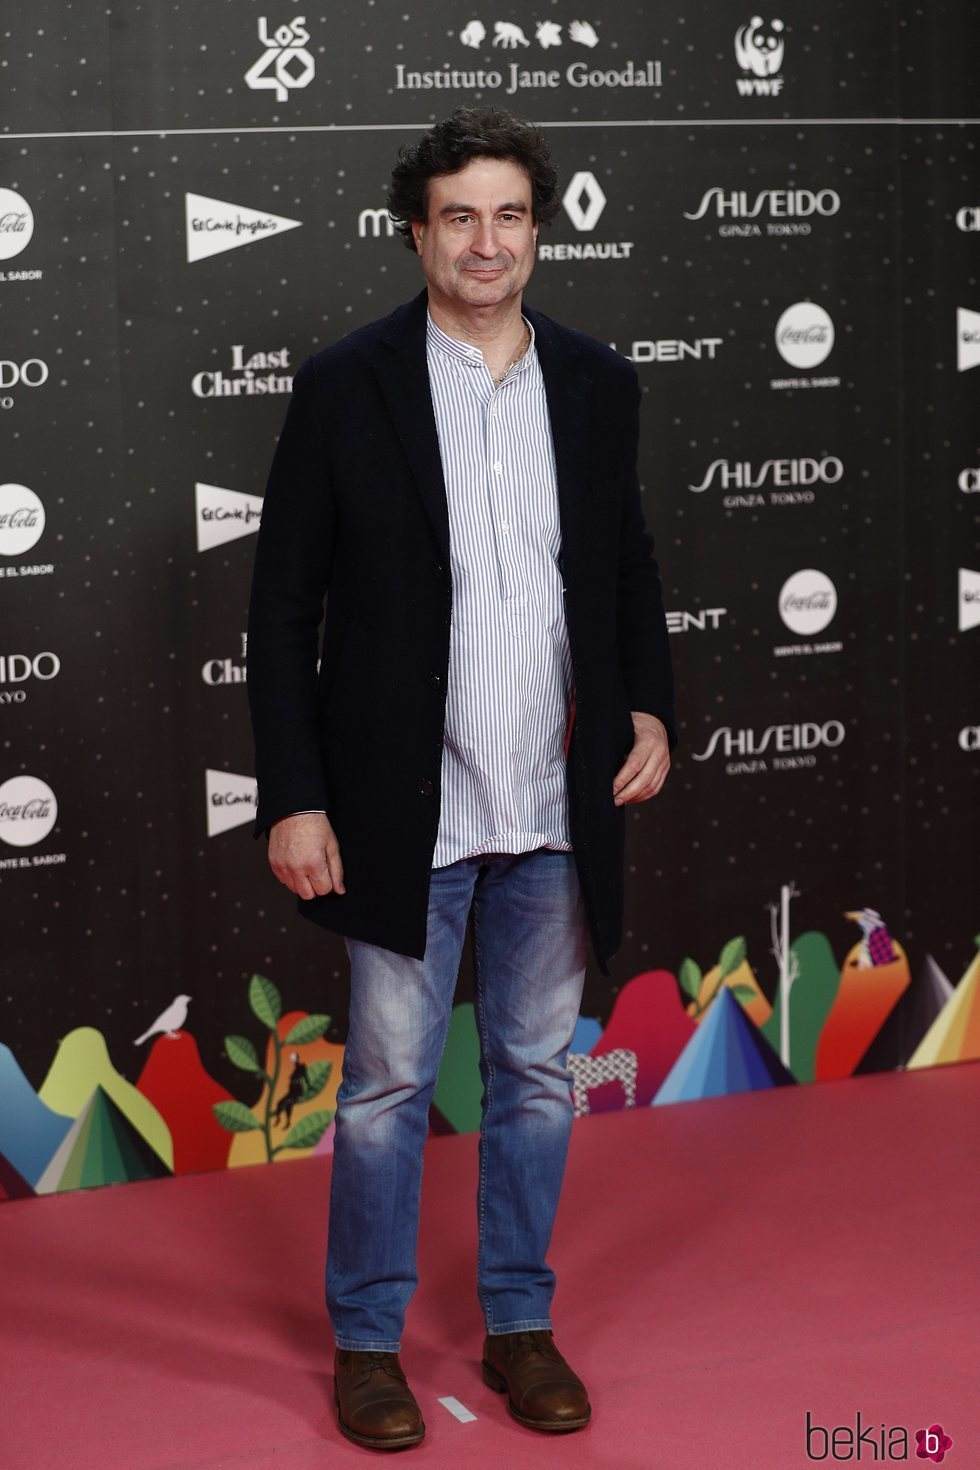 Pepe Rodríguez en Los 40 Music Awards 2019